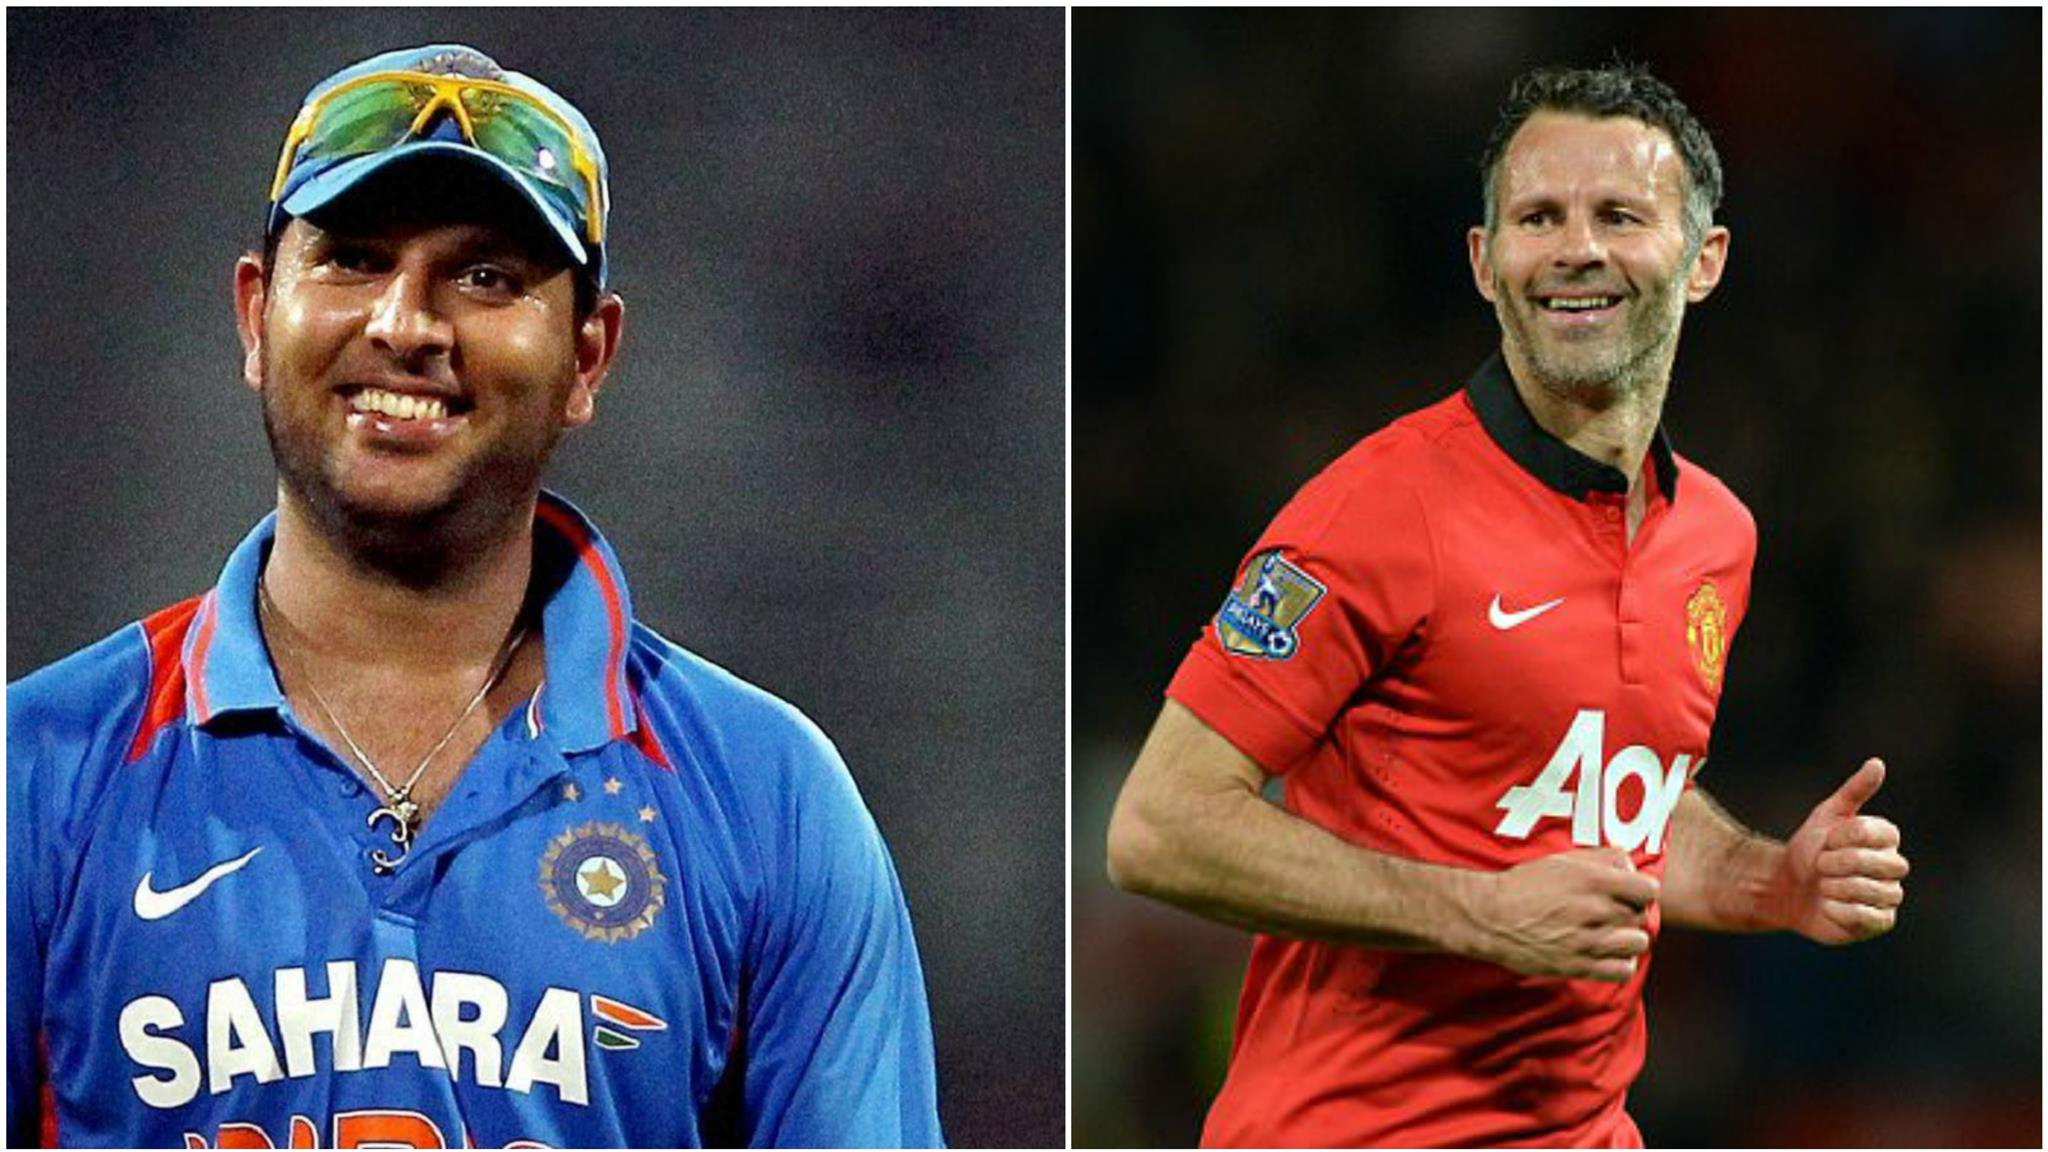 Watch: Yuvraj Singh cheering for Ryan Giggs' incredible football skills